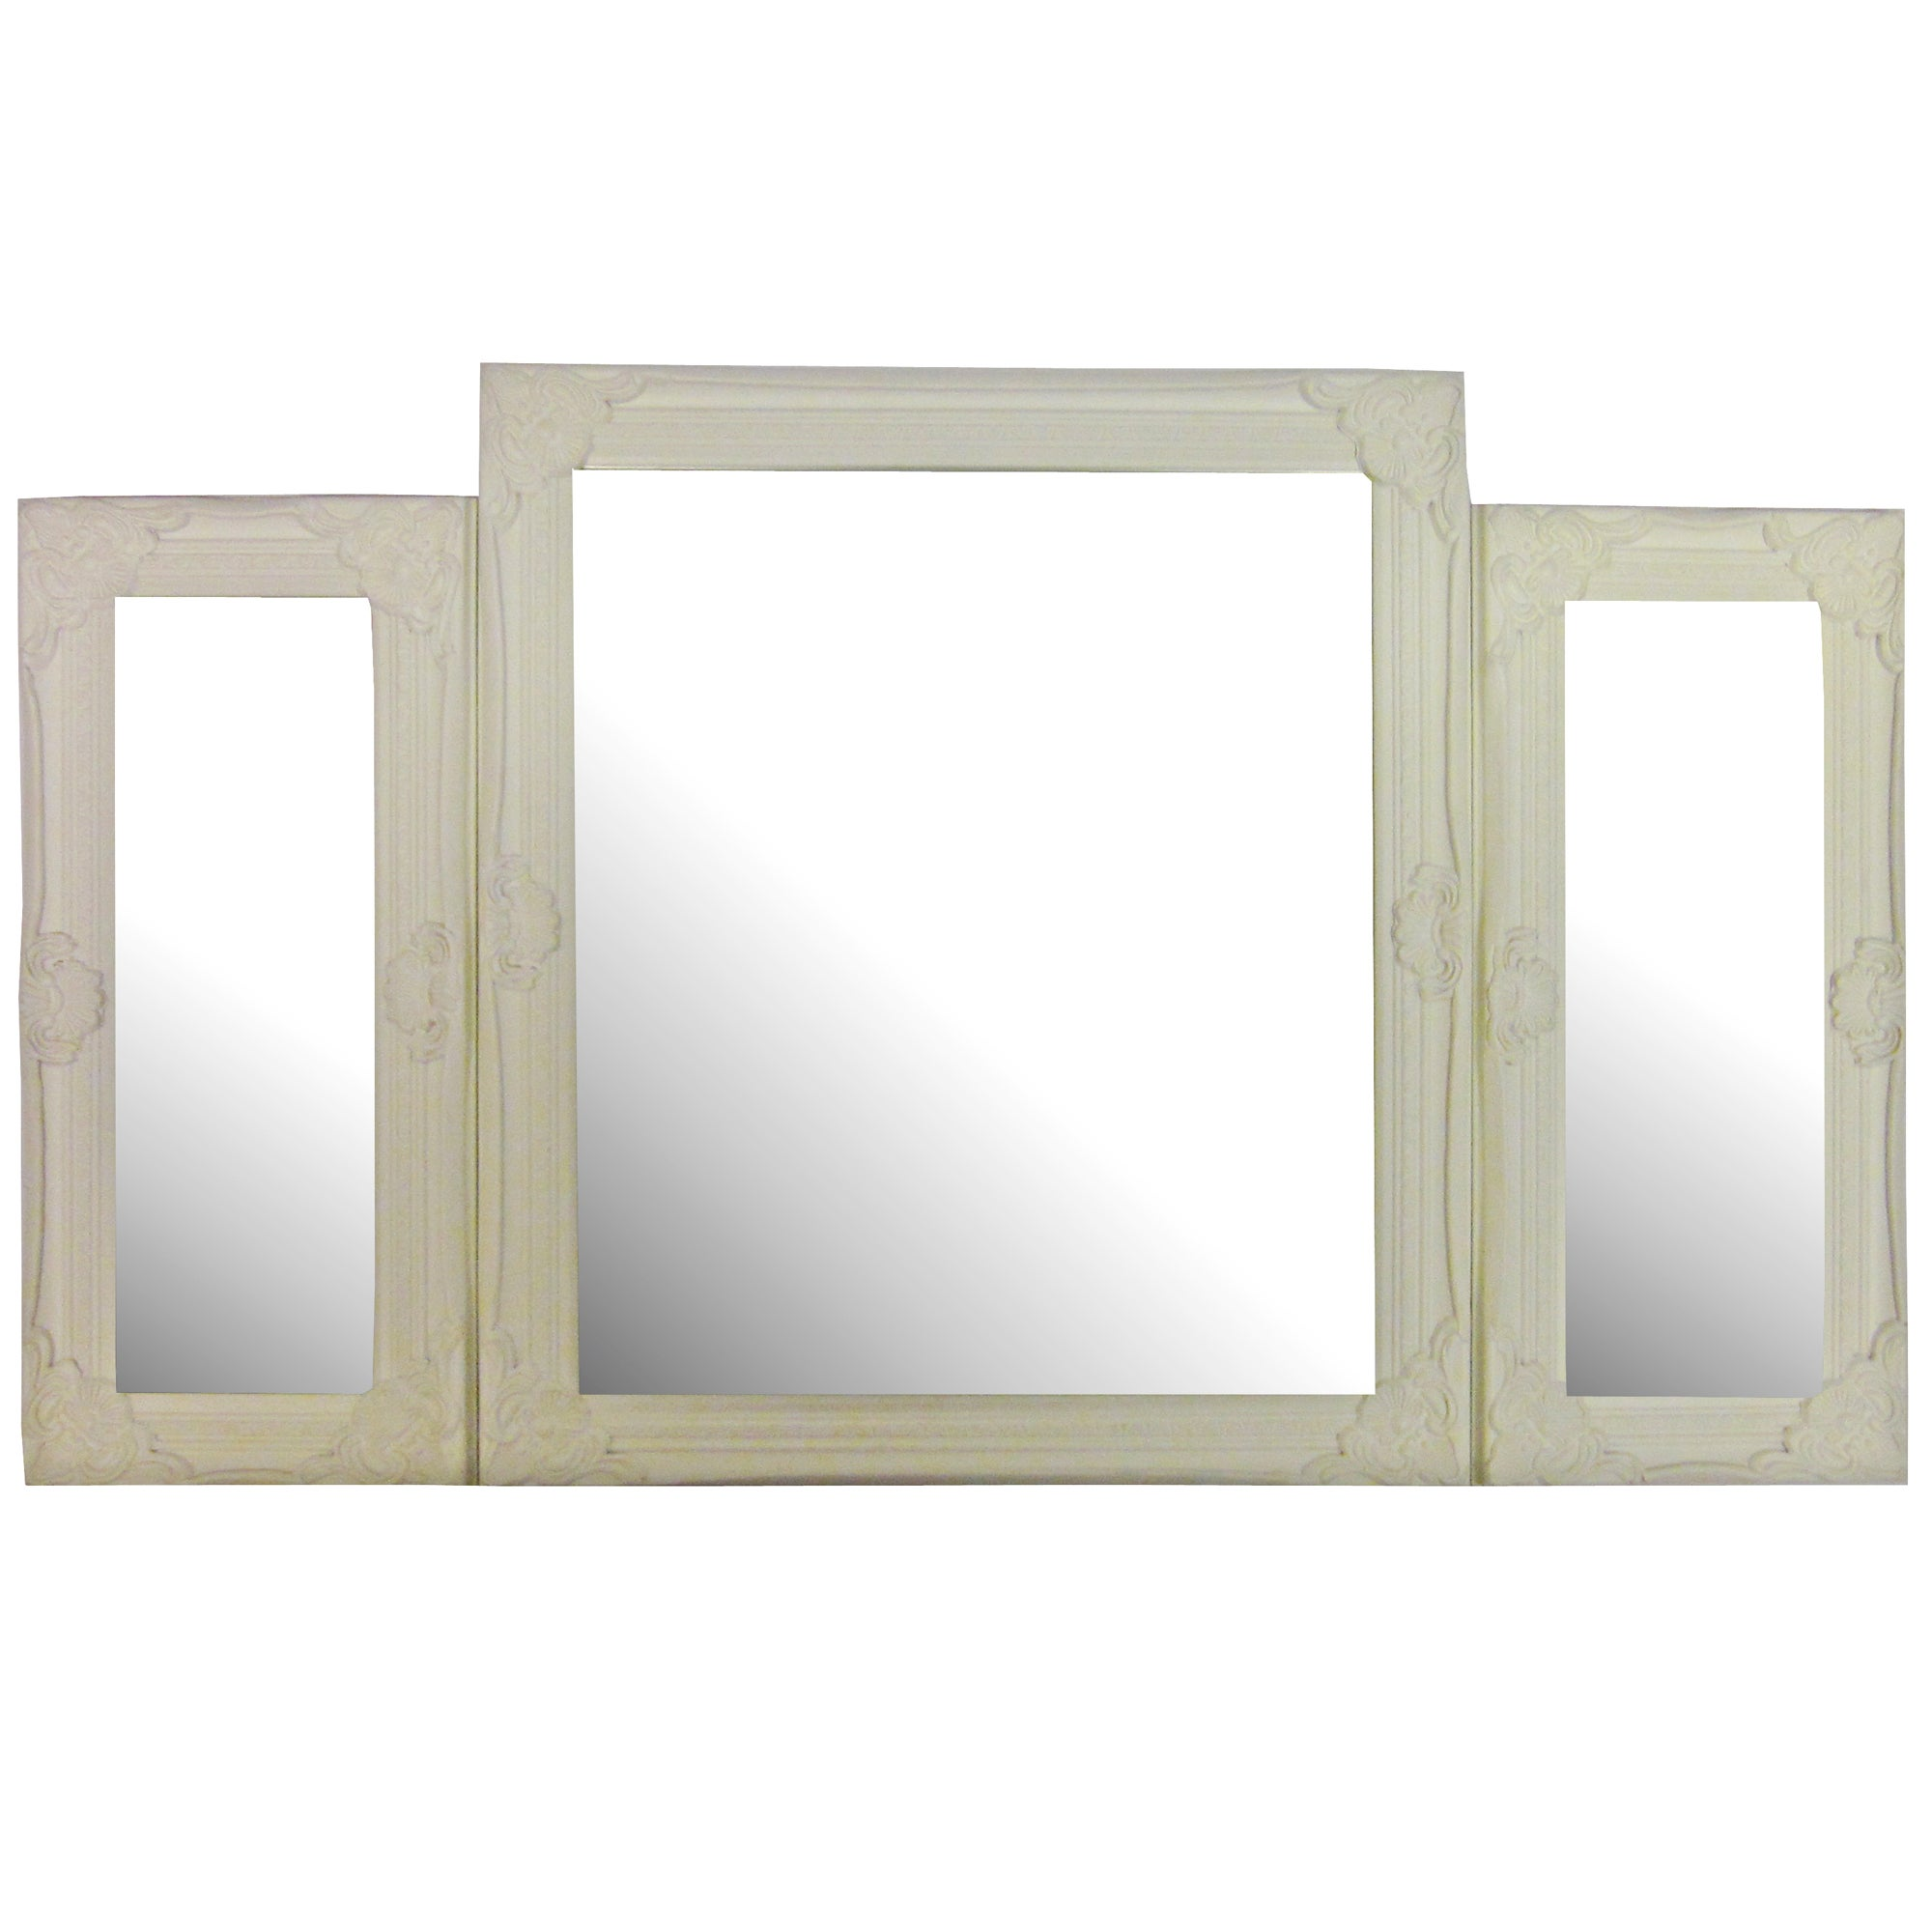 Vintage Swept Frame Table Top Mirror